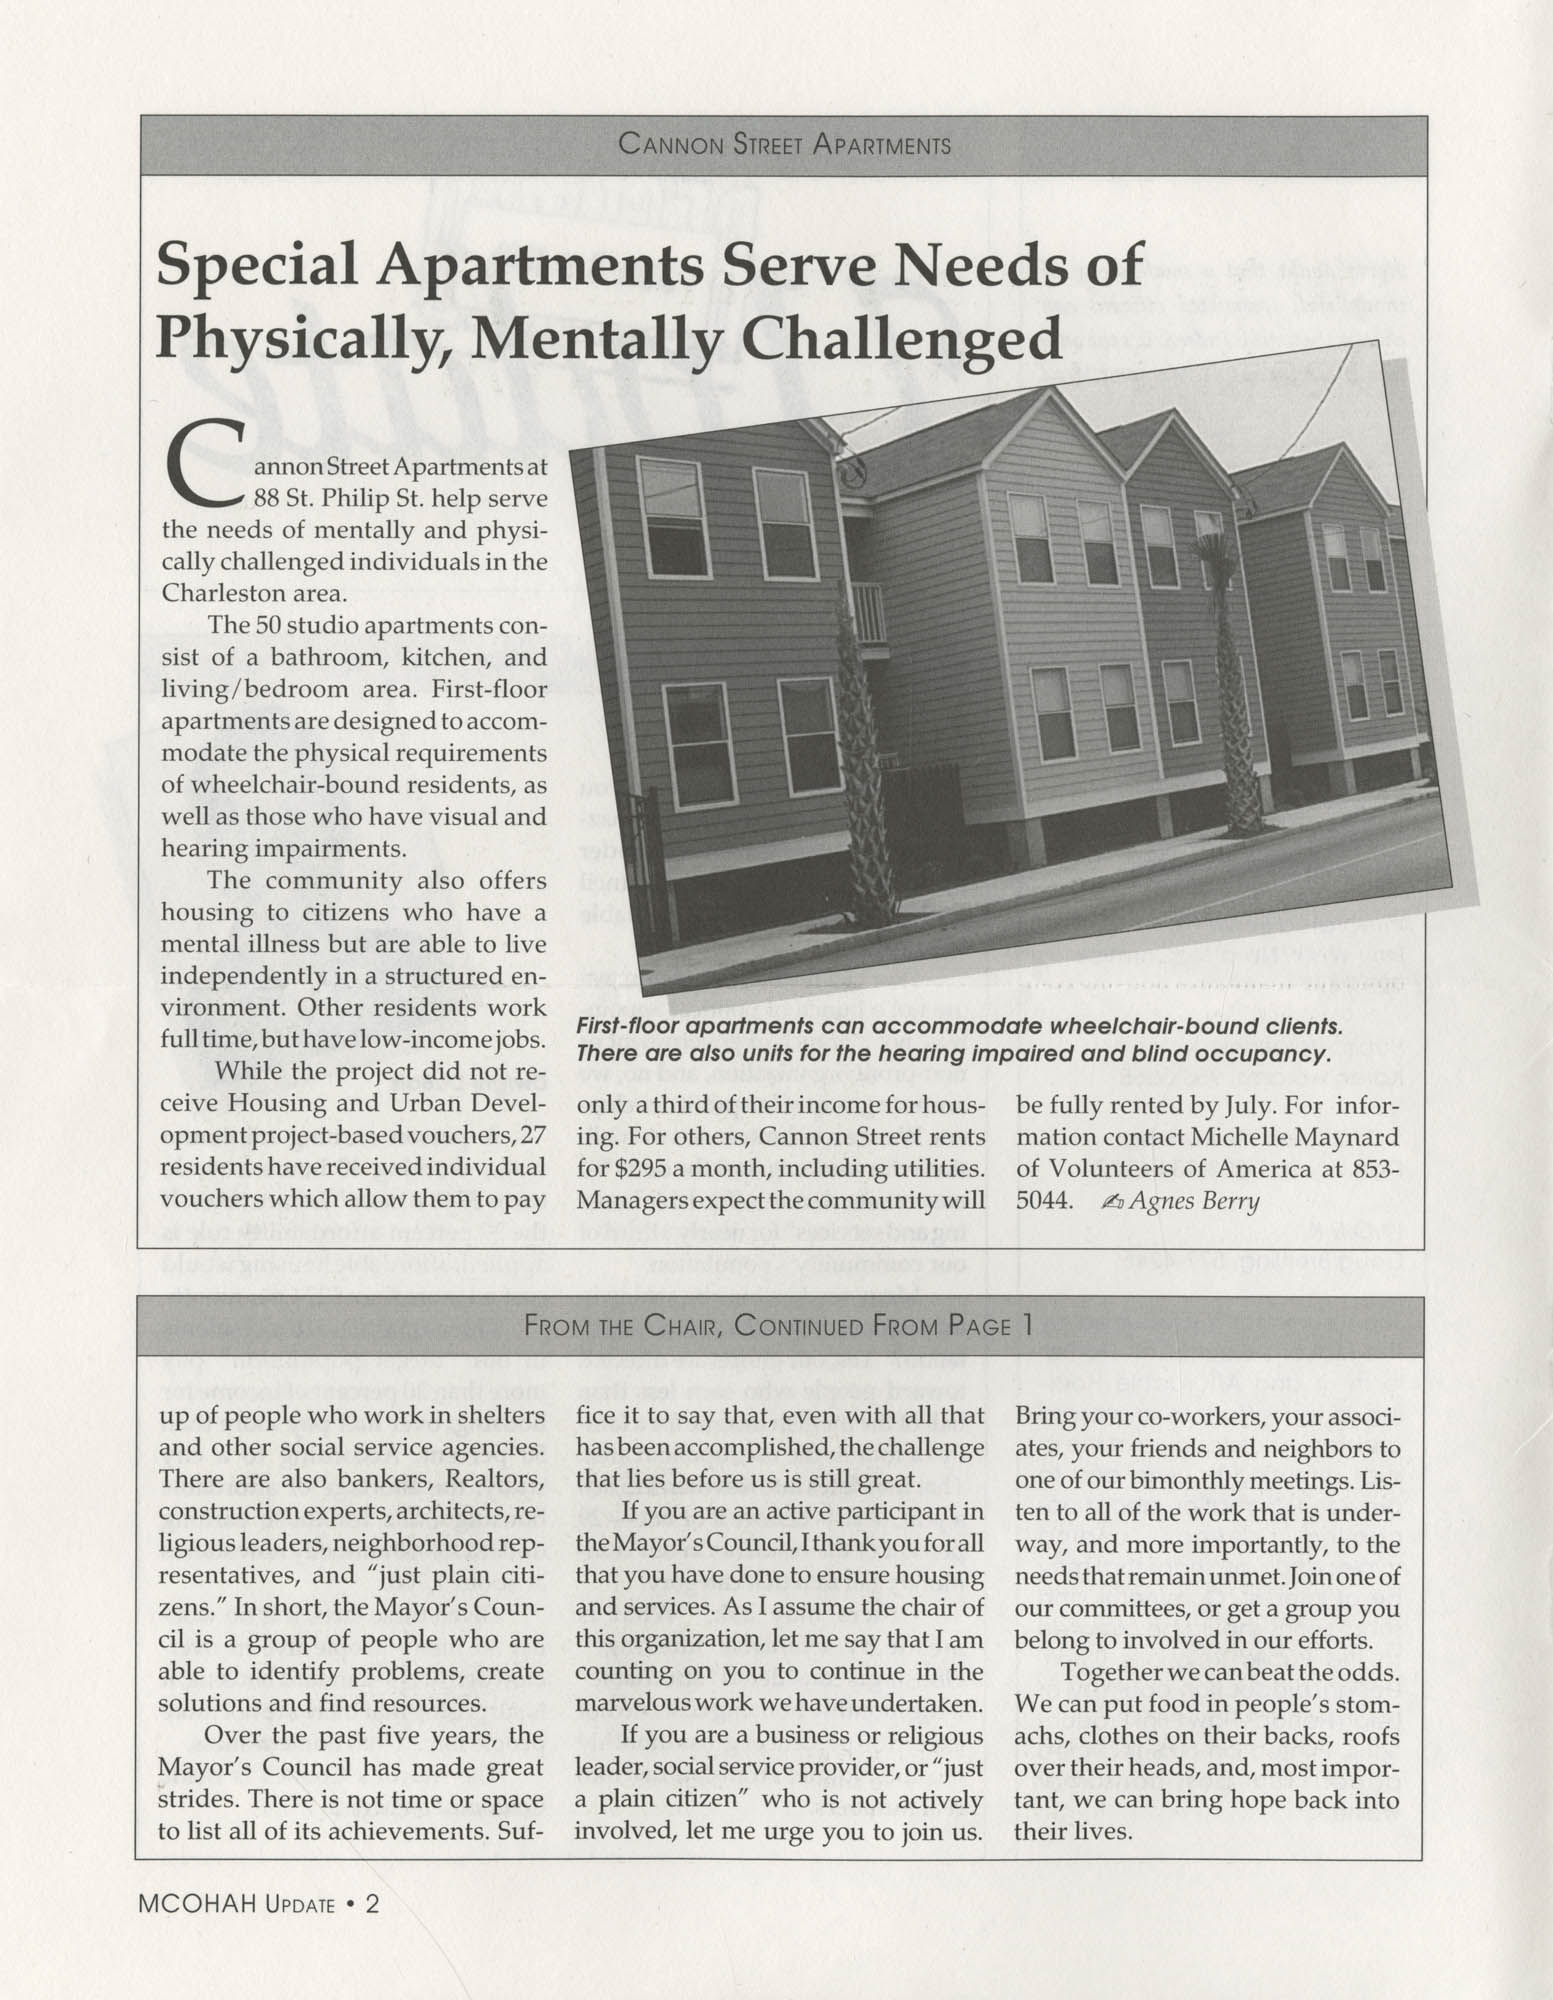 Mayor's Council on Homelessness and Affordable Housing Update Newsletter, Summer 1994, Page 2